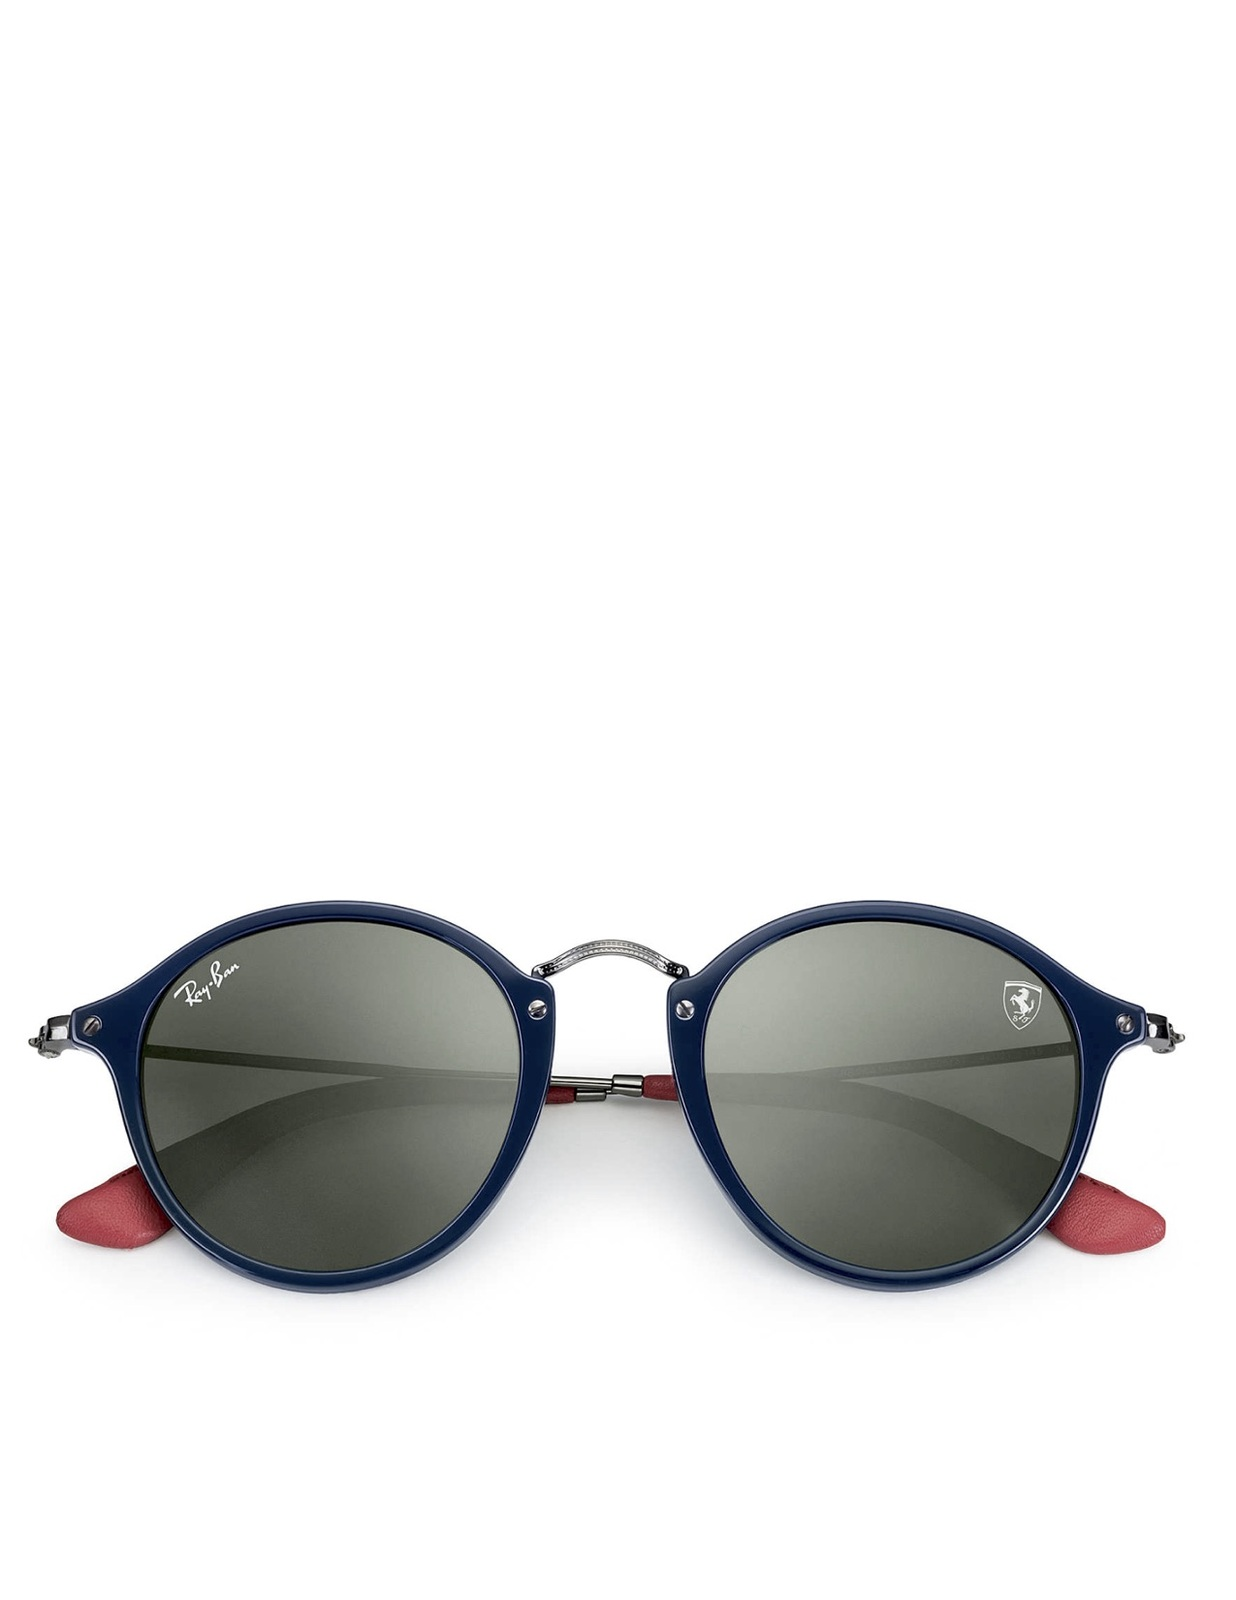 b6872033ca5d Ray Ban Bl 60 35 B   You Bouygues Telecom « One More Soul